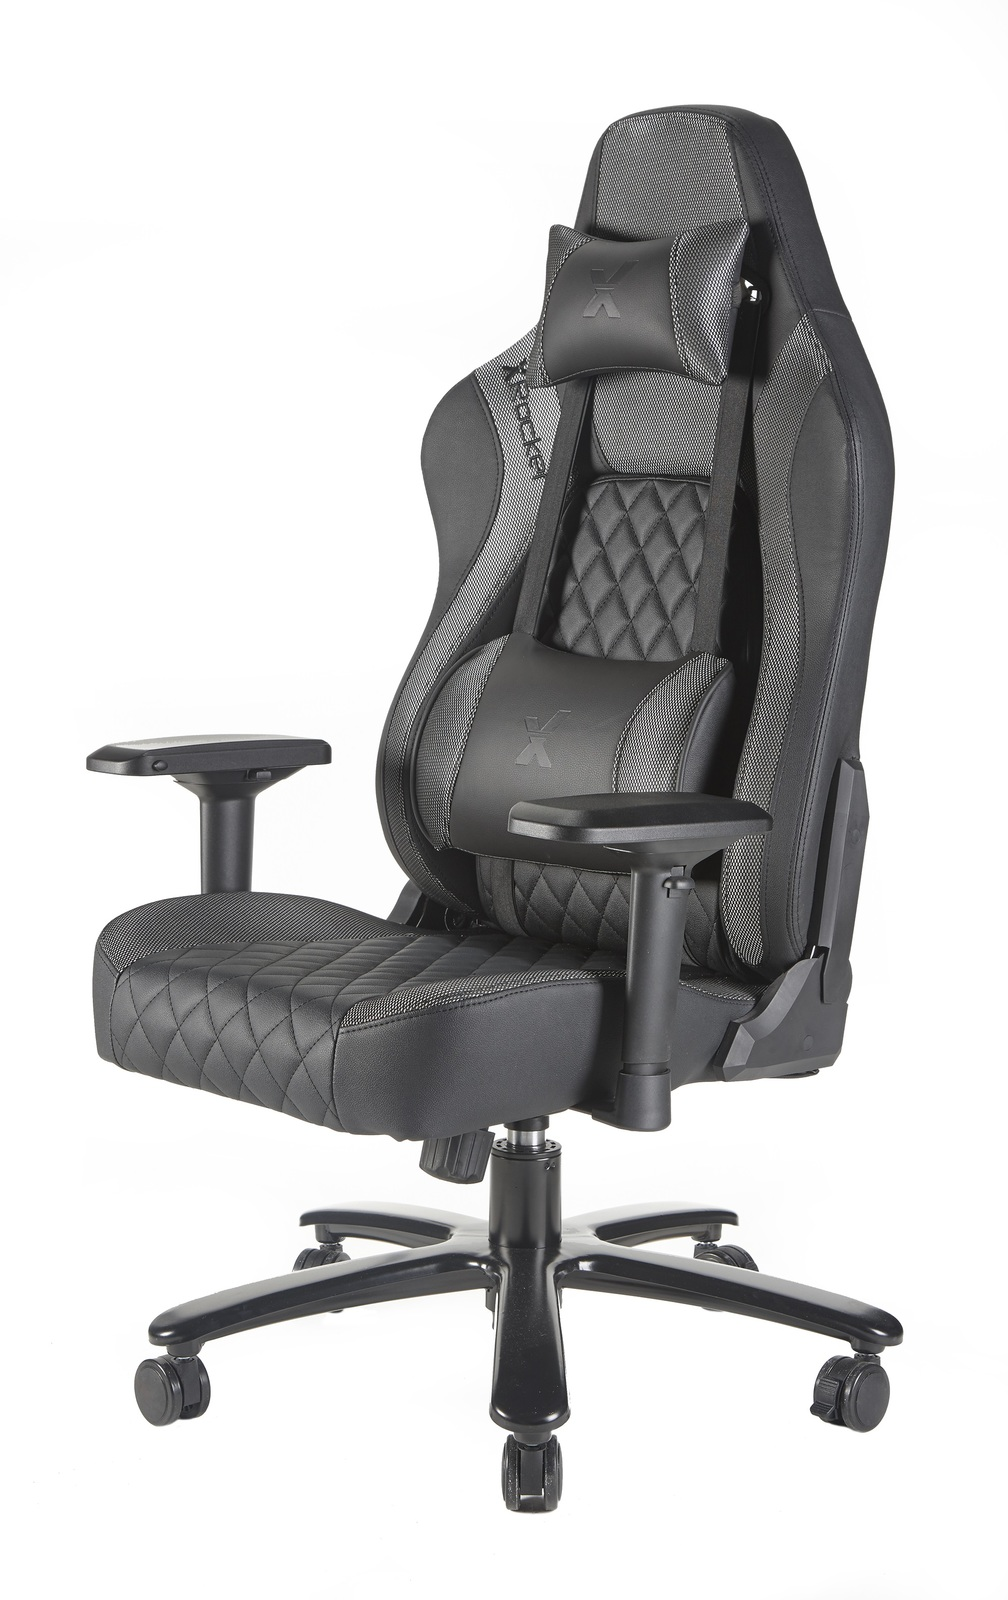 X Rocker Delta Limited Edition Gaming Chair for PC Games image